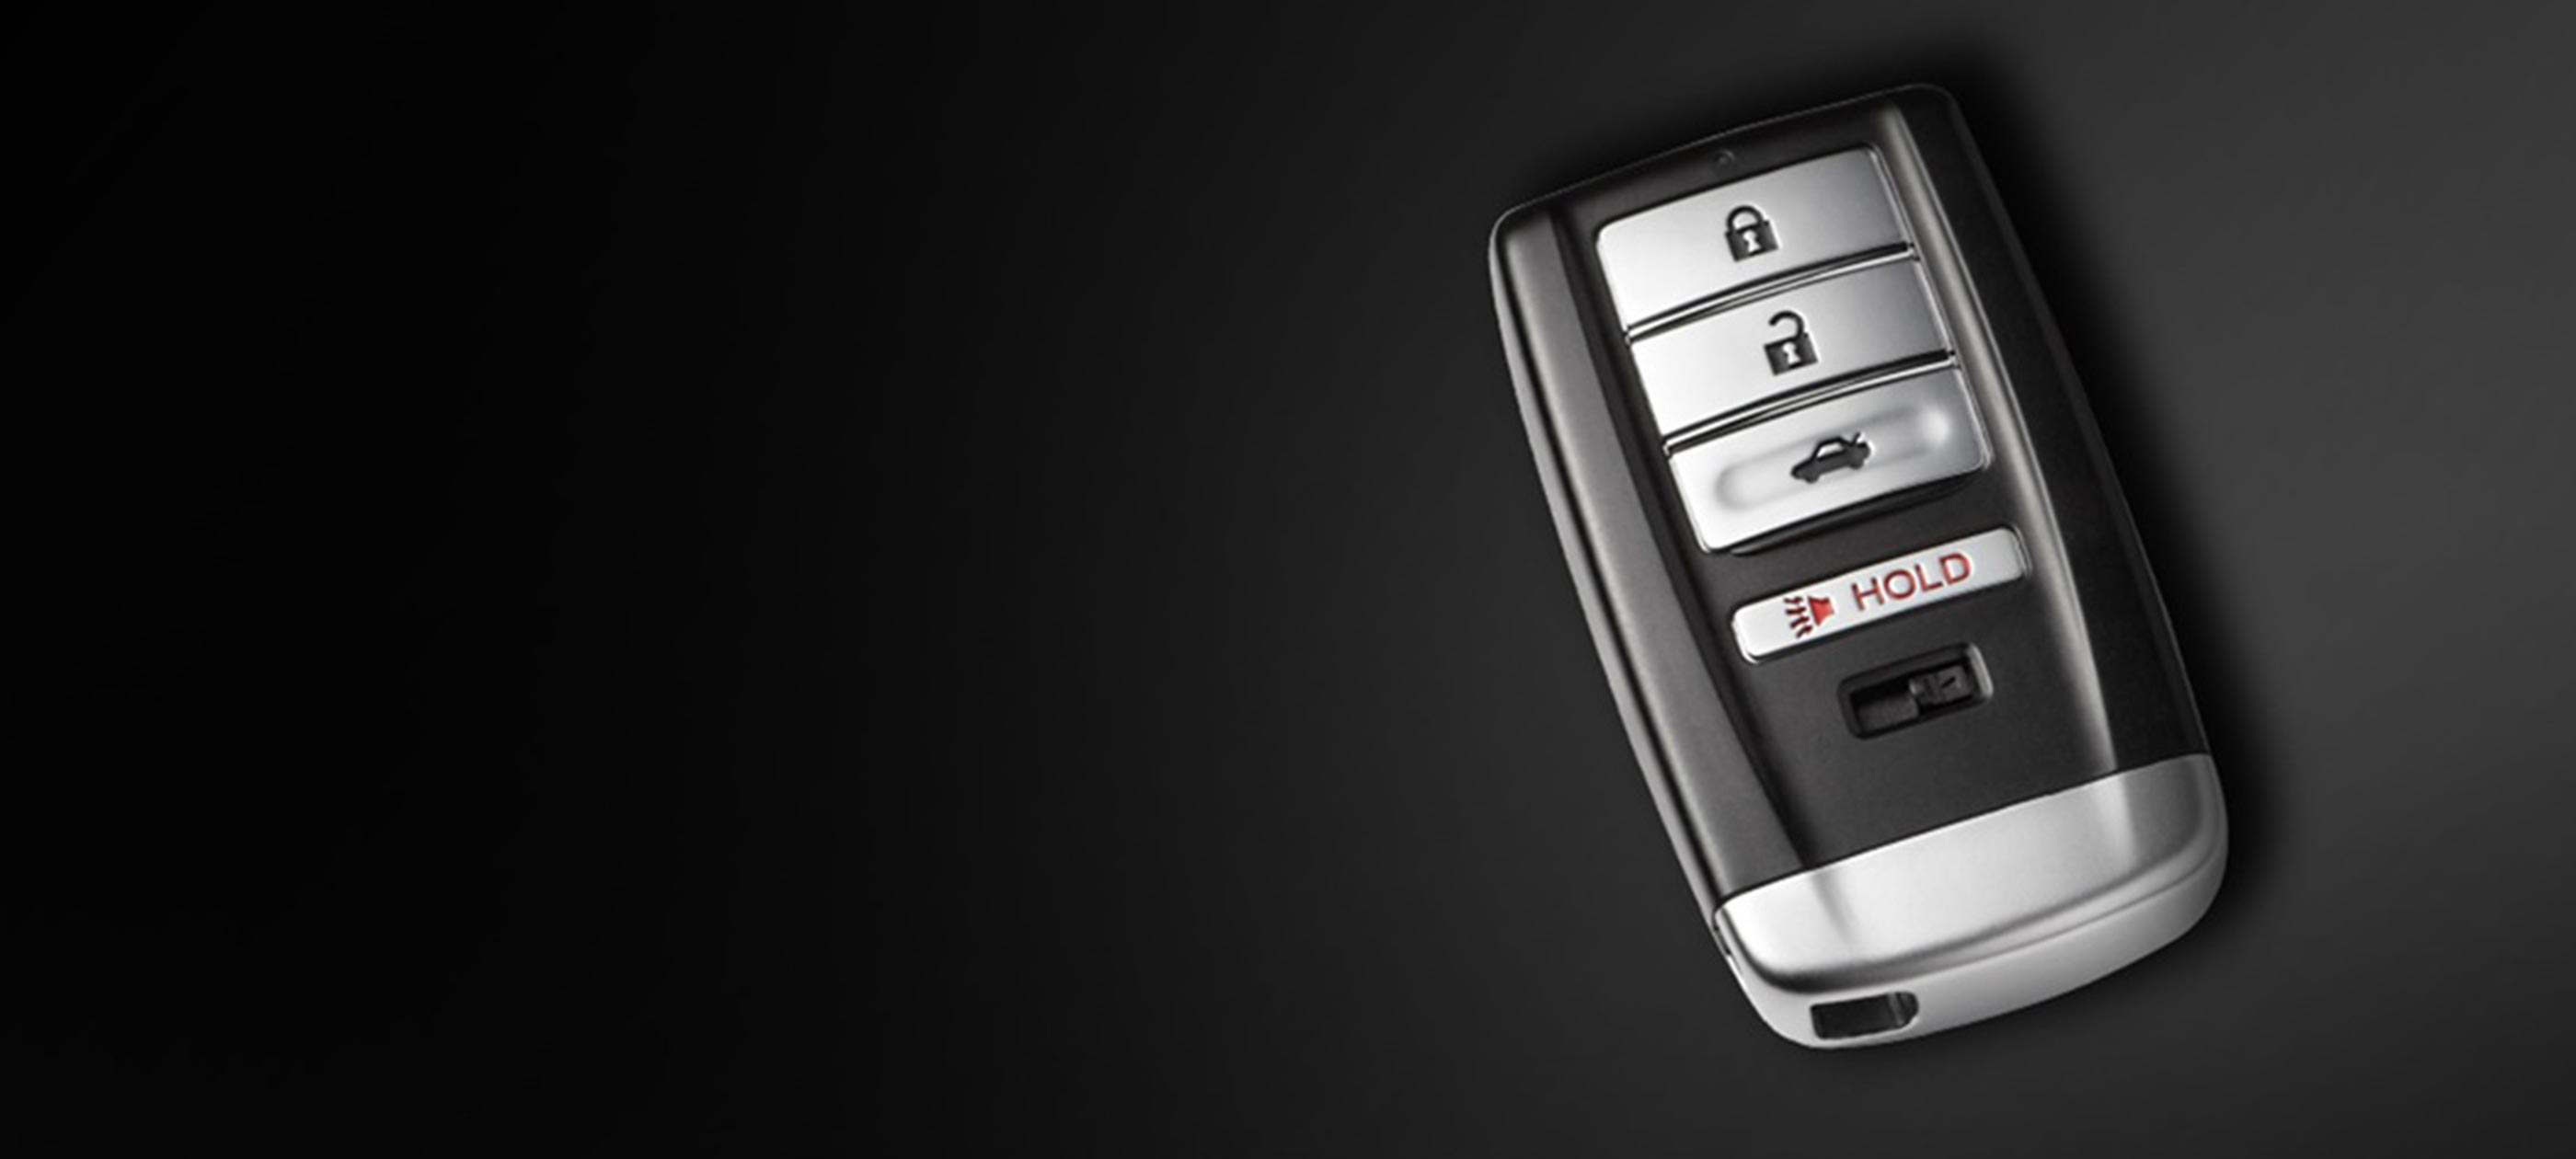 The Keyless Access System